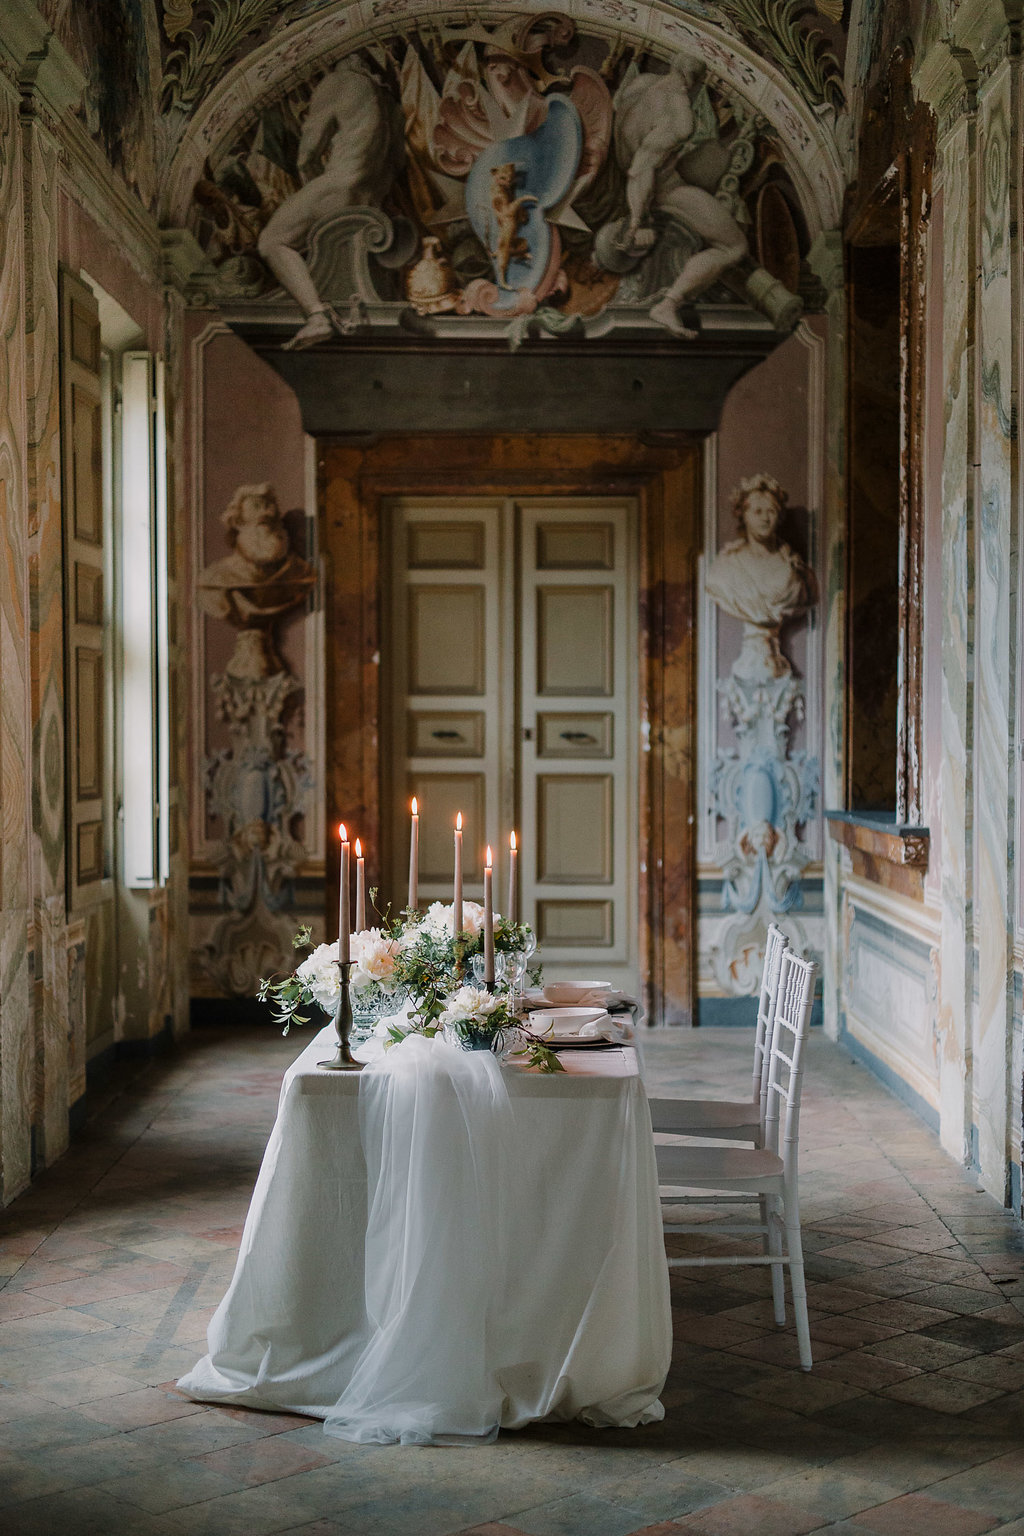 Italian Villa Wedding Table